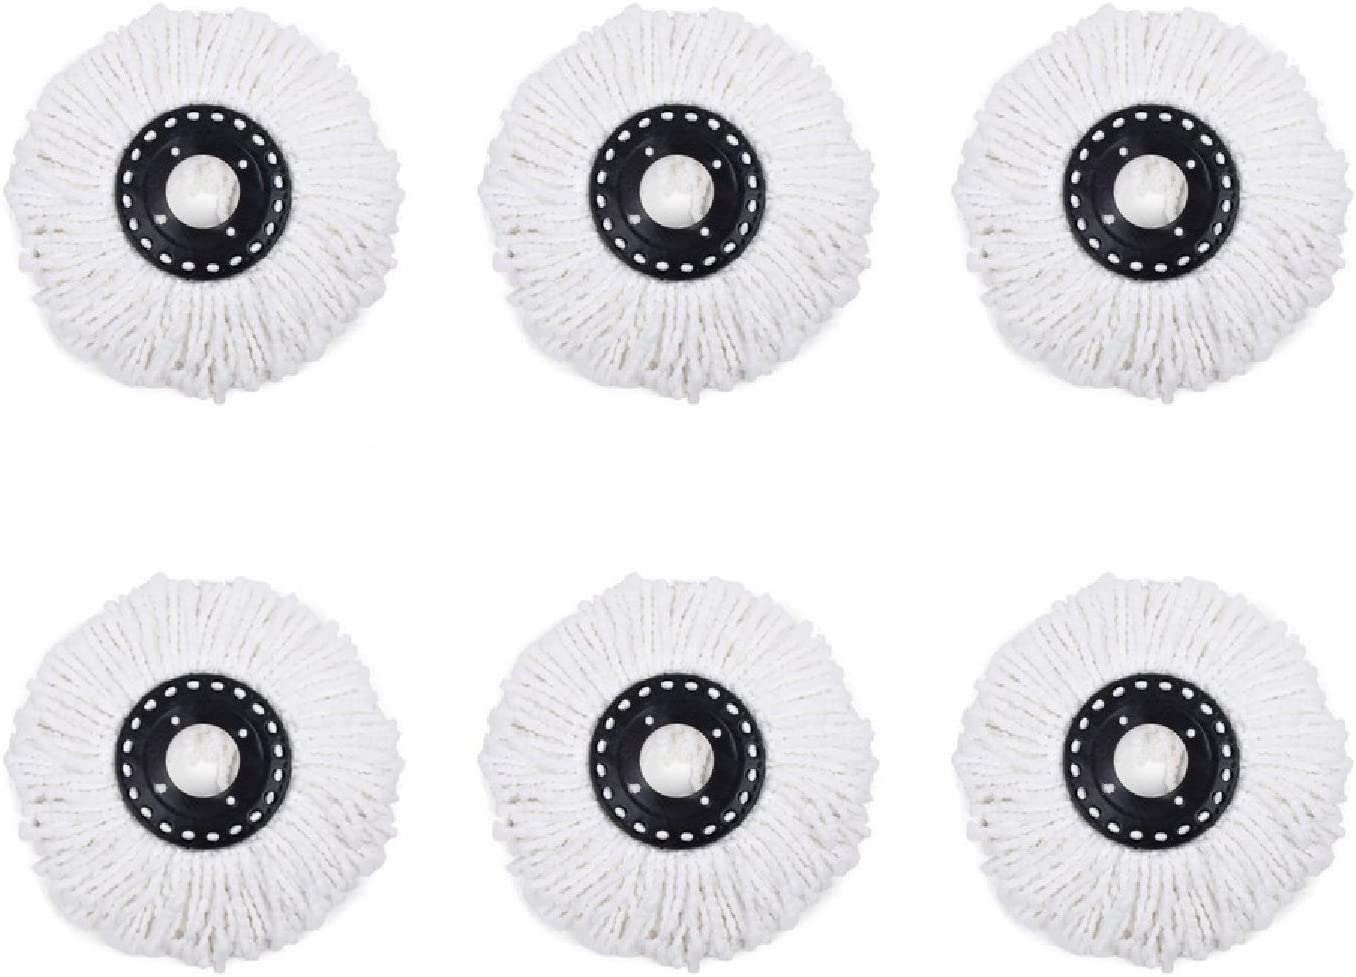 7try New 6pcs Microfiber Mop Head Refill For HSN Hurricane Magic Mop 360¡ã Spin Replacement Mophead